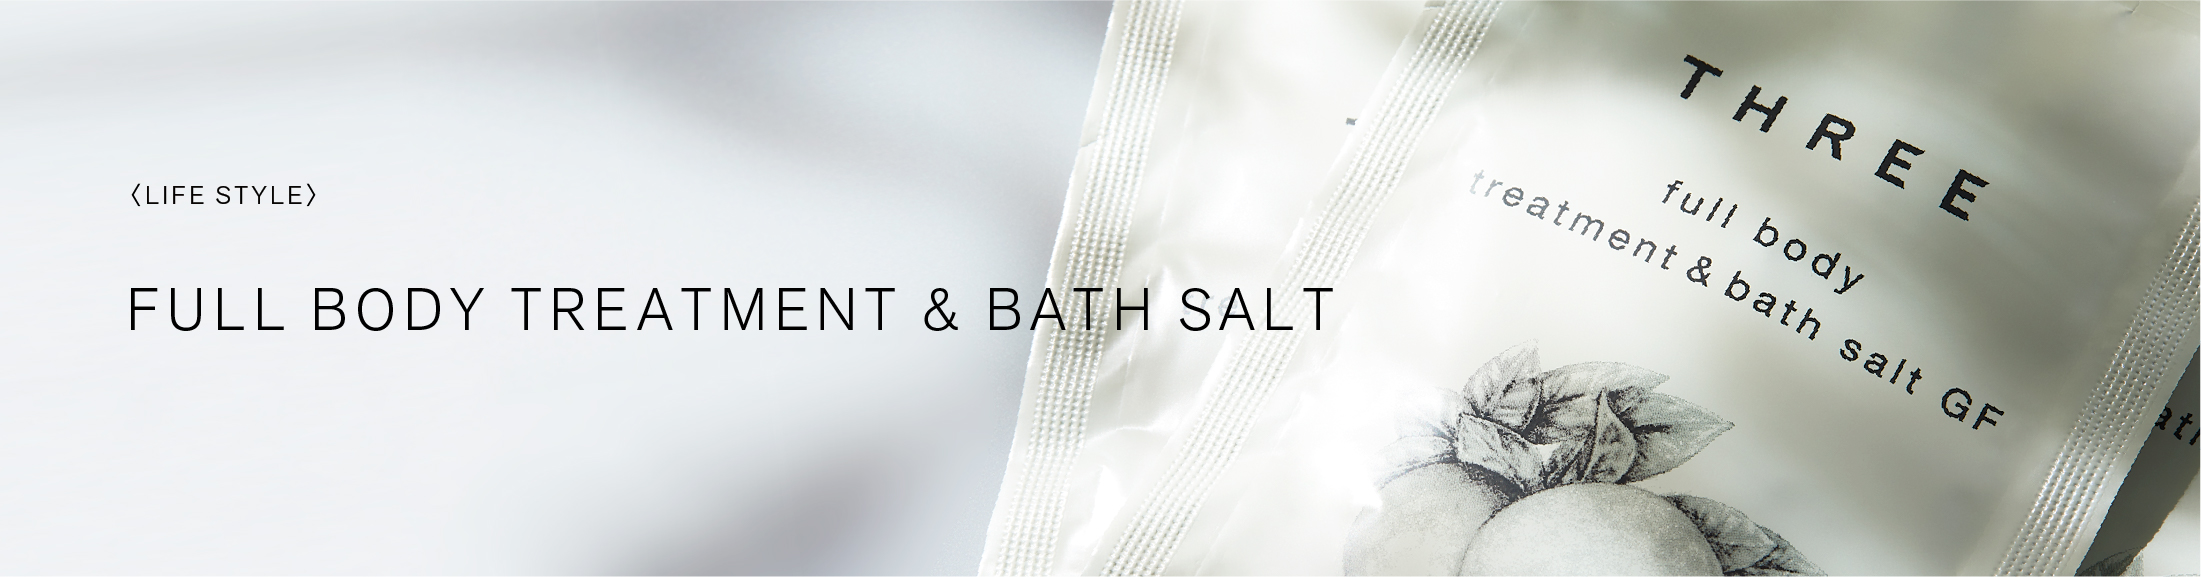 FULL BODY TREATMENT & BATH SALT